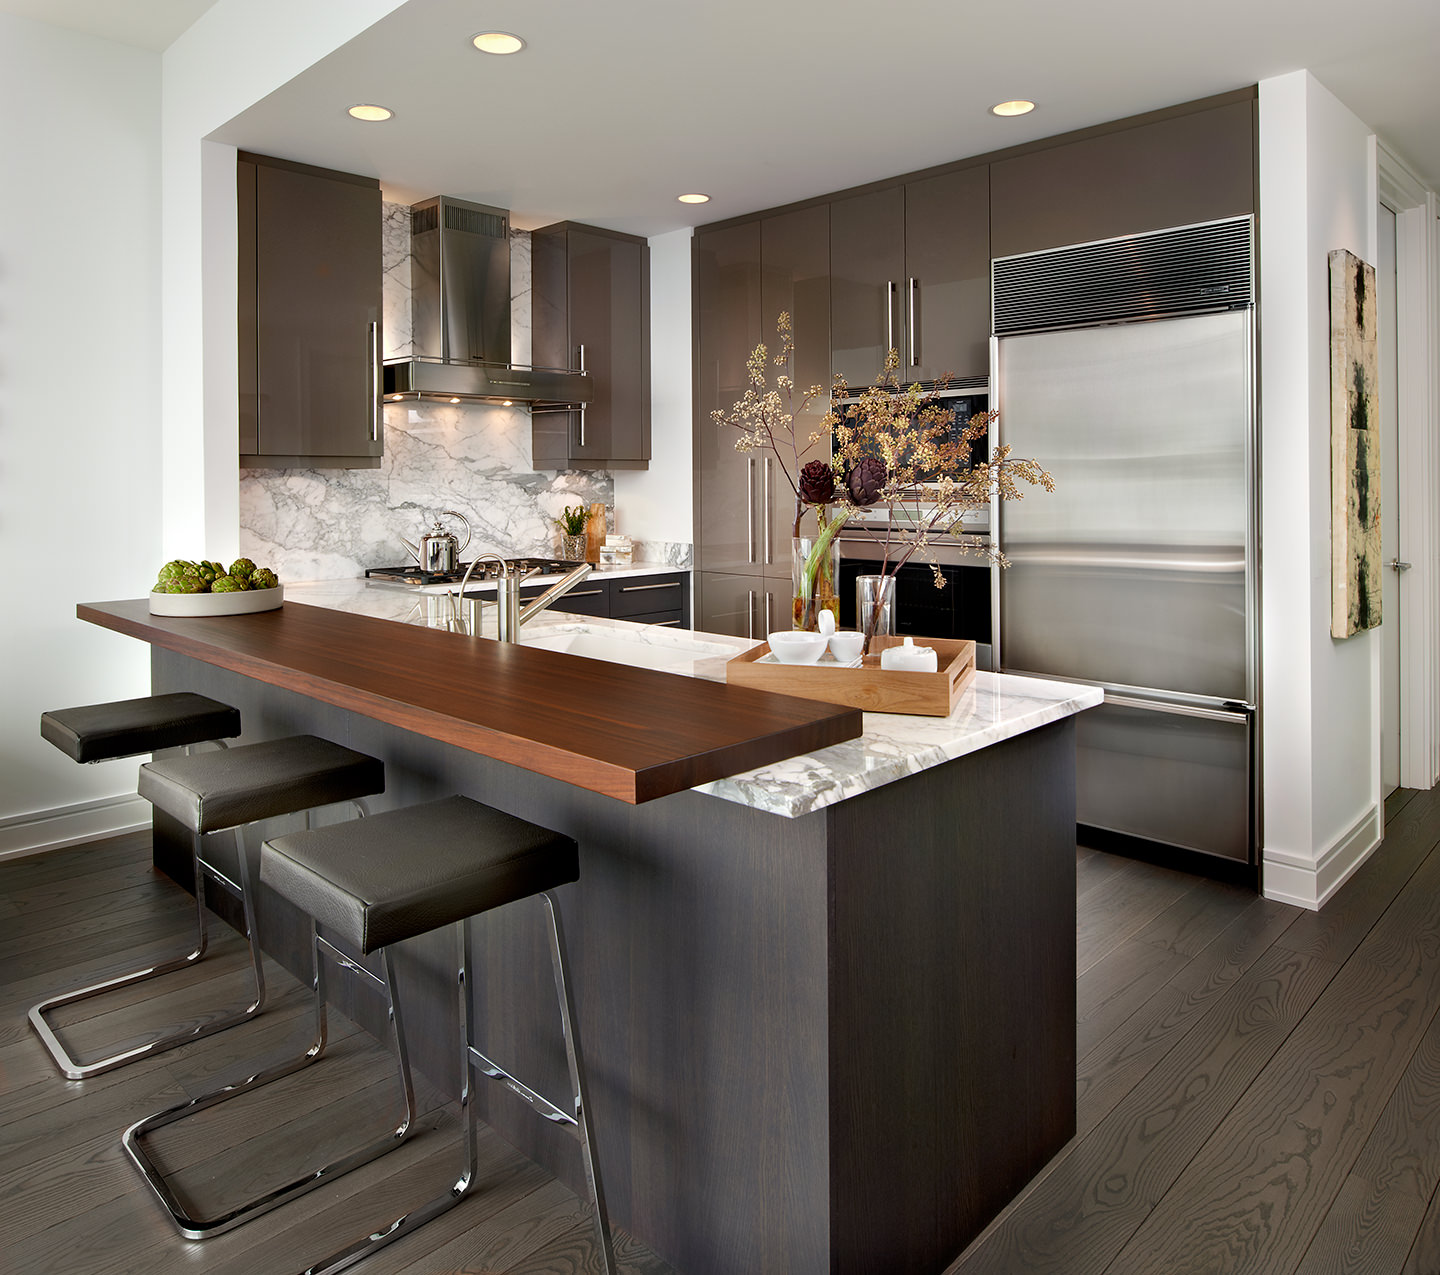 A kitchen facelift gives this high rise condo a dramatic new look. Trump Condo Remodel   Snaidero